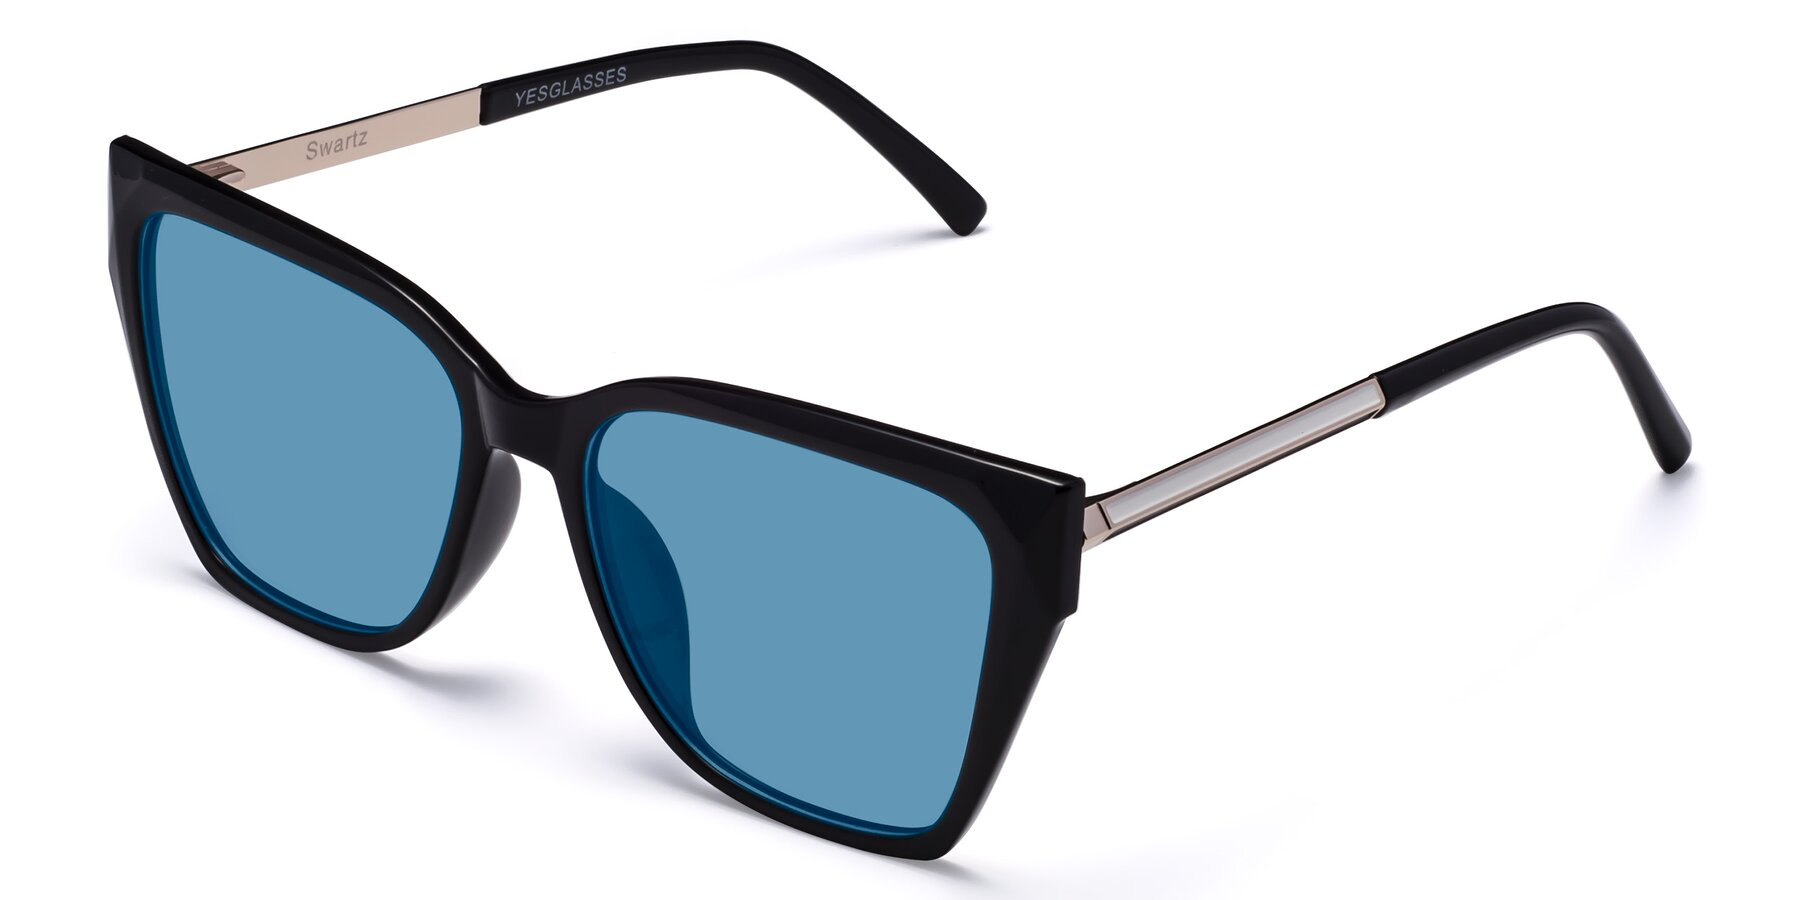 Angle of Swartz in Black with Medium Blue Tinted Lenses